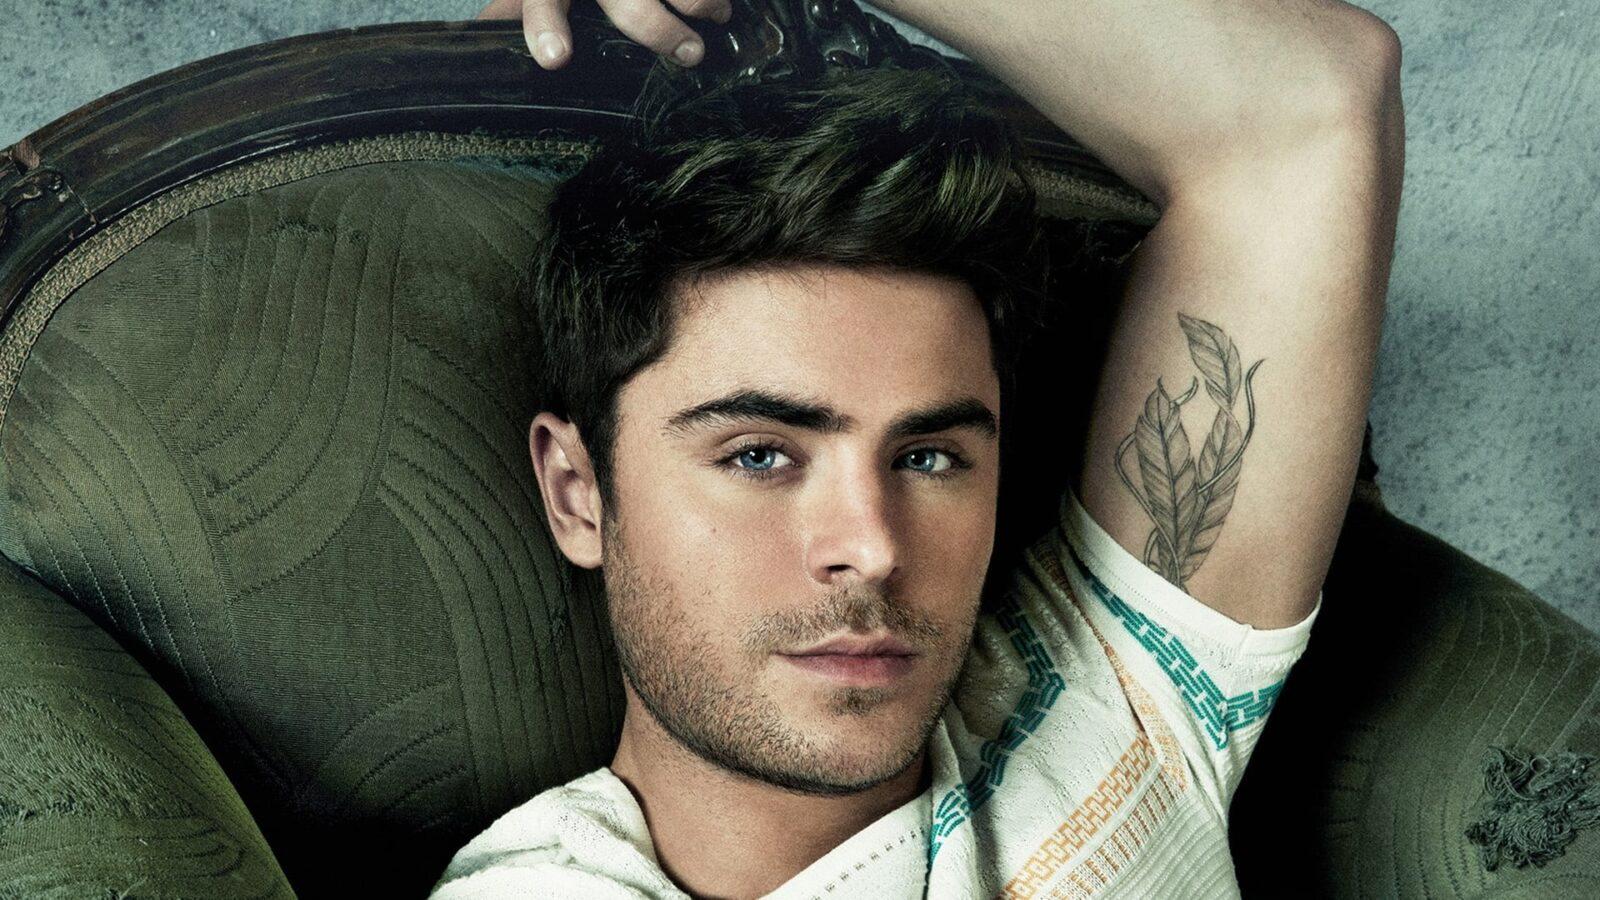 zac efron desktop wallpaper